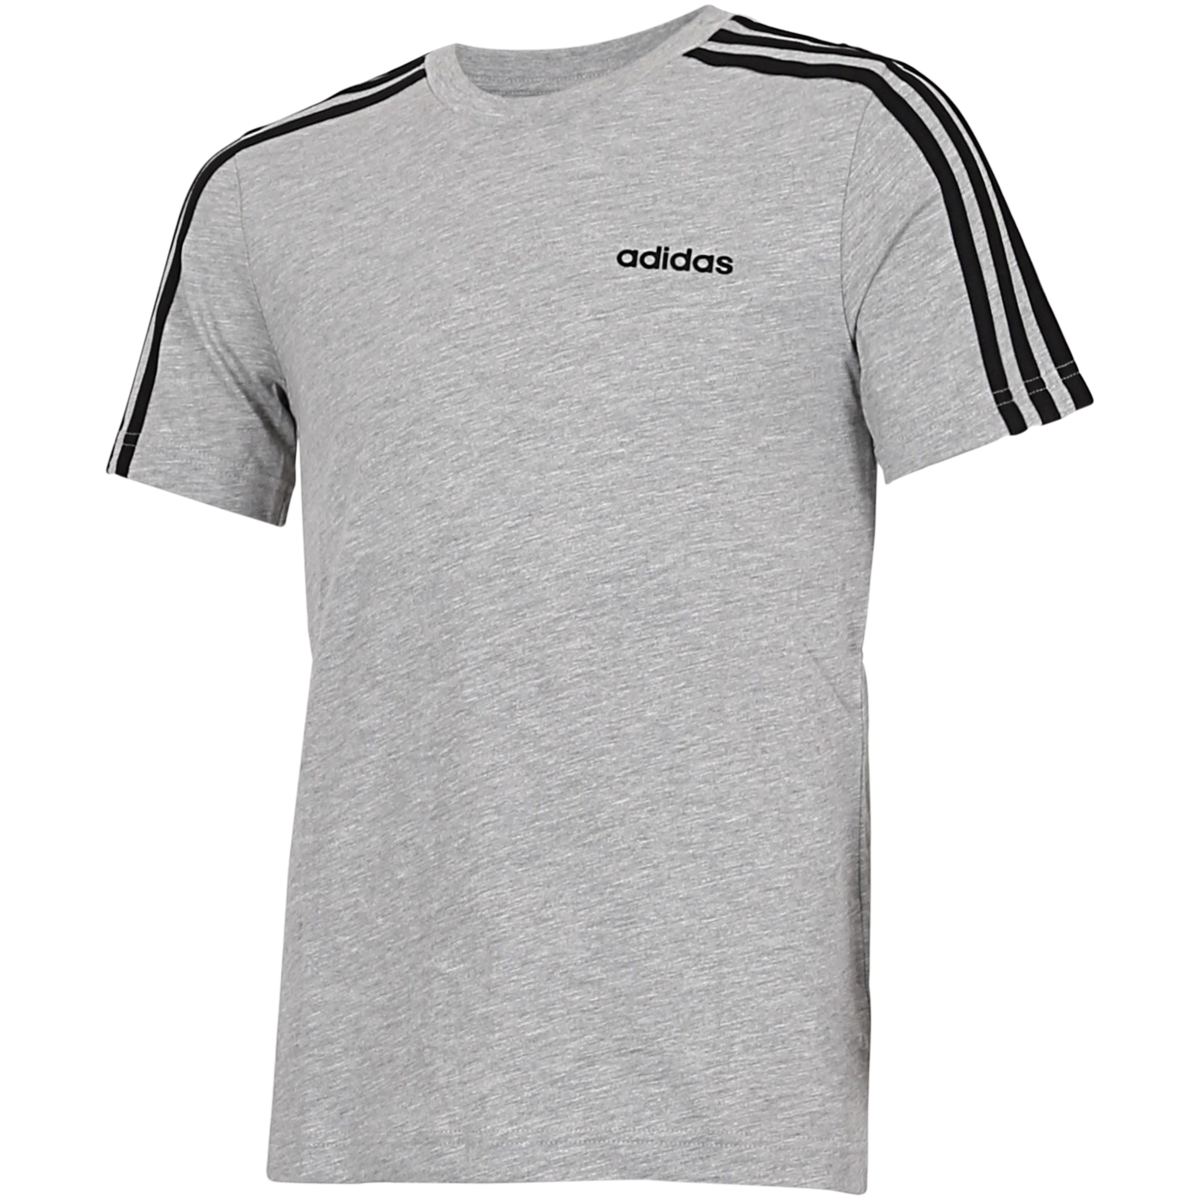 adidas - Essentials 3-Stripes T-shirt - Grå